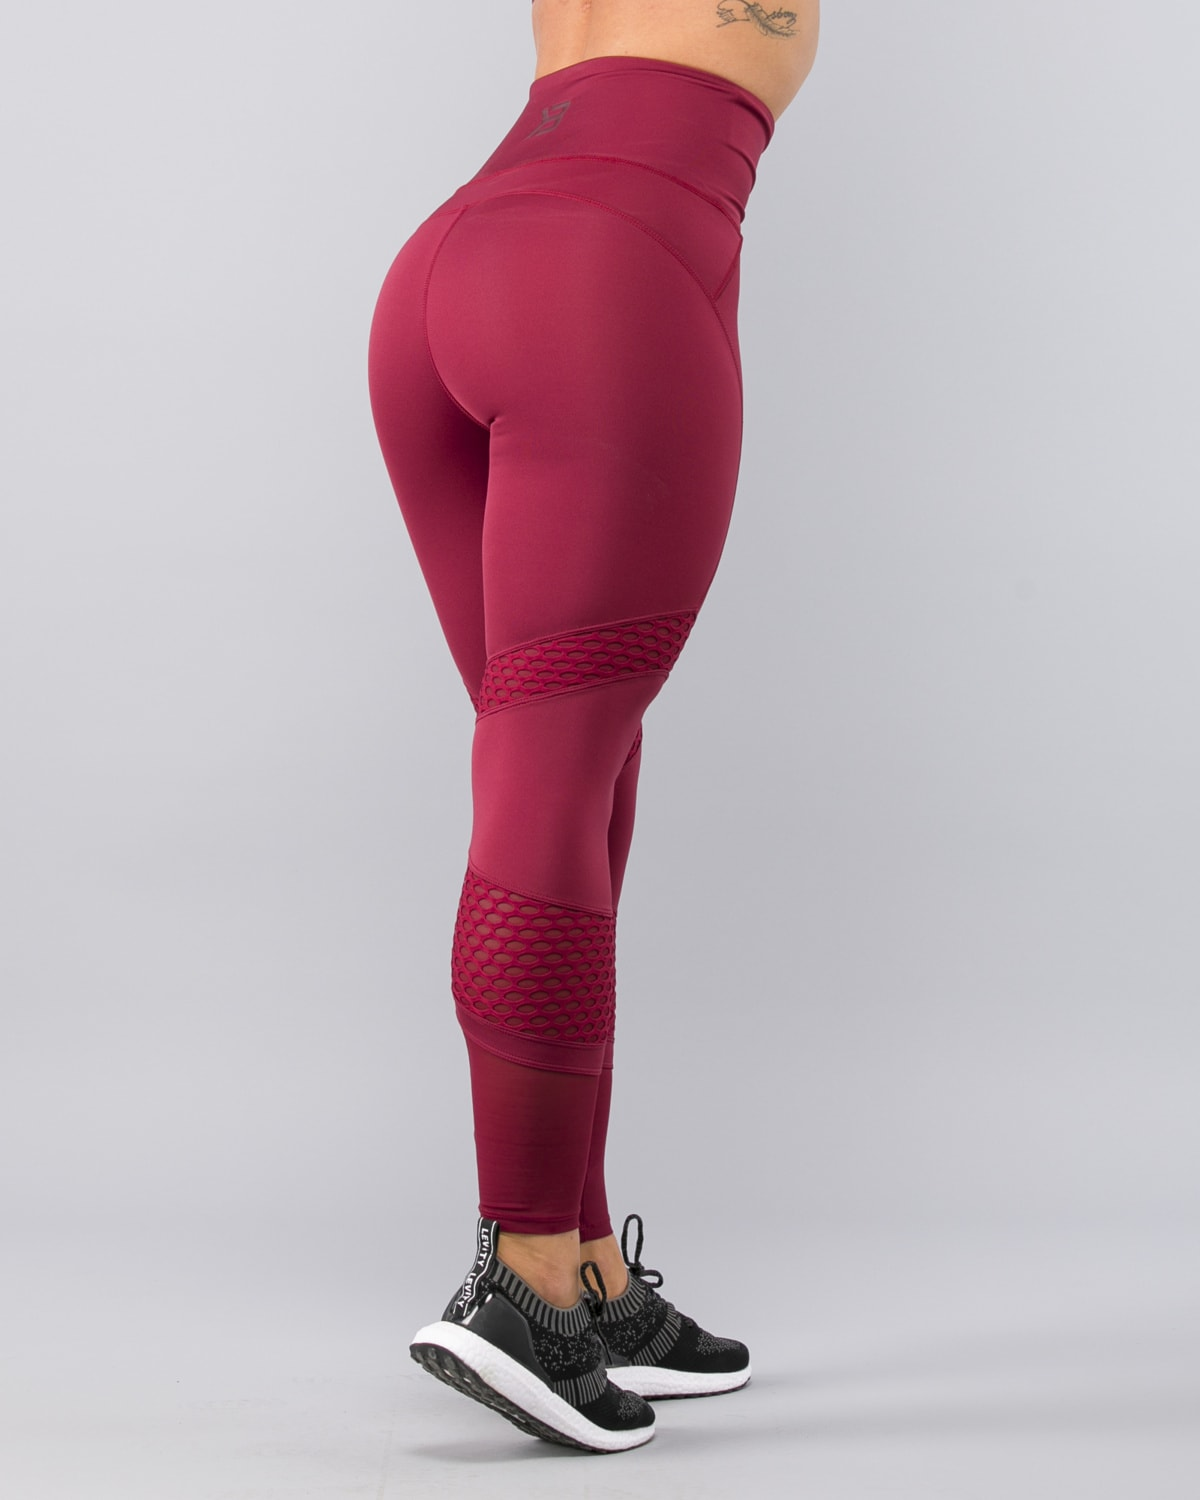 Better-Bodies-Waverly-Mesh-Tights–Sangria-Red6